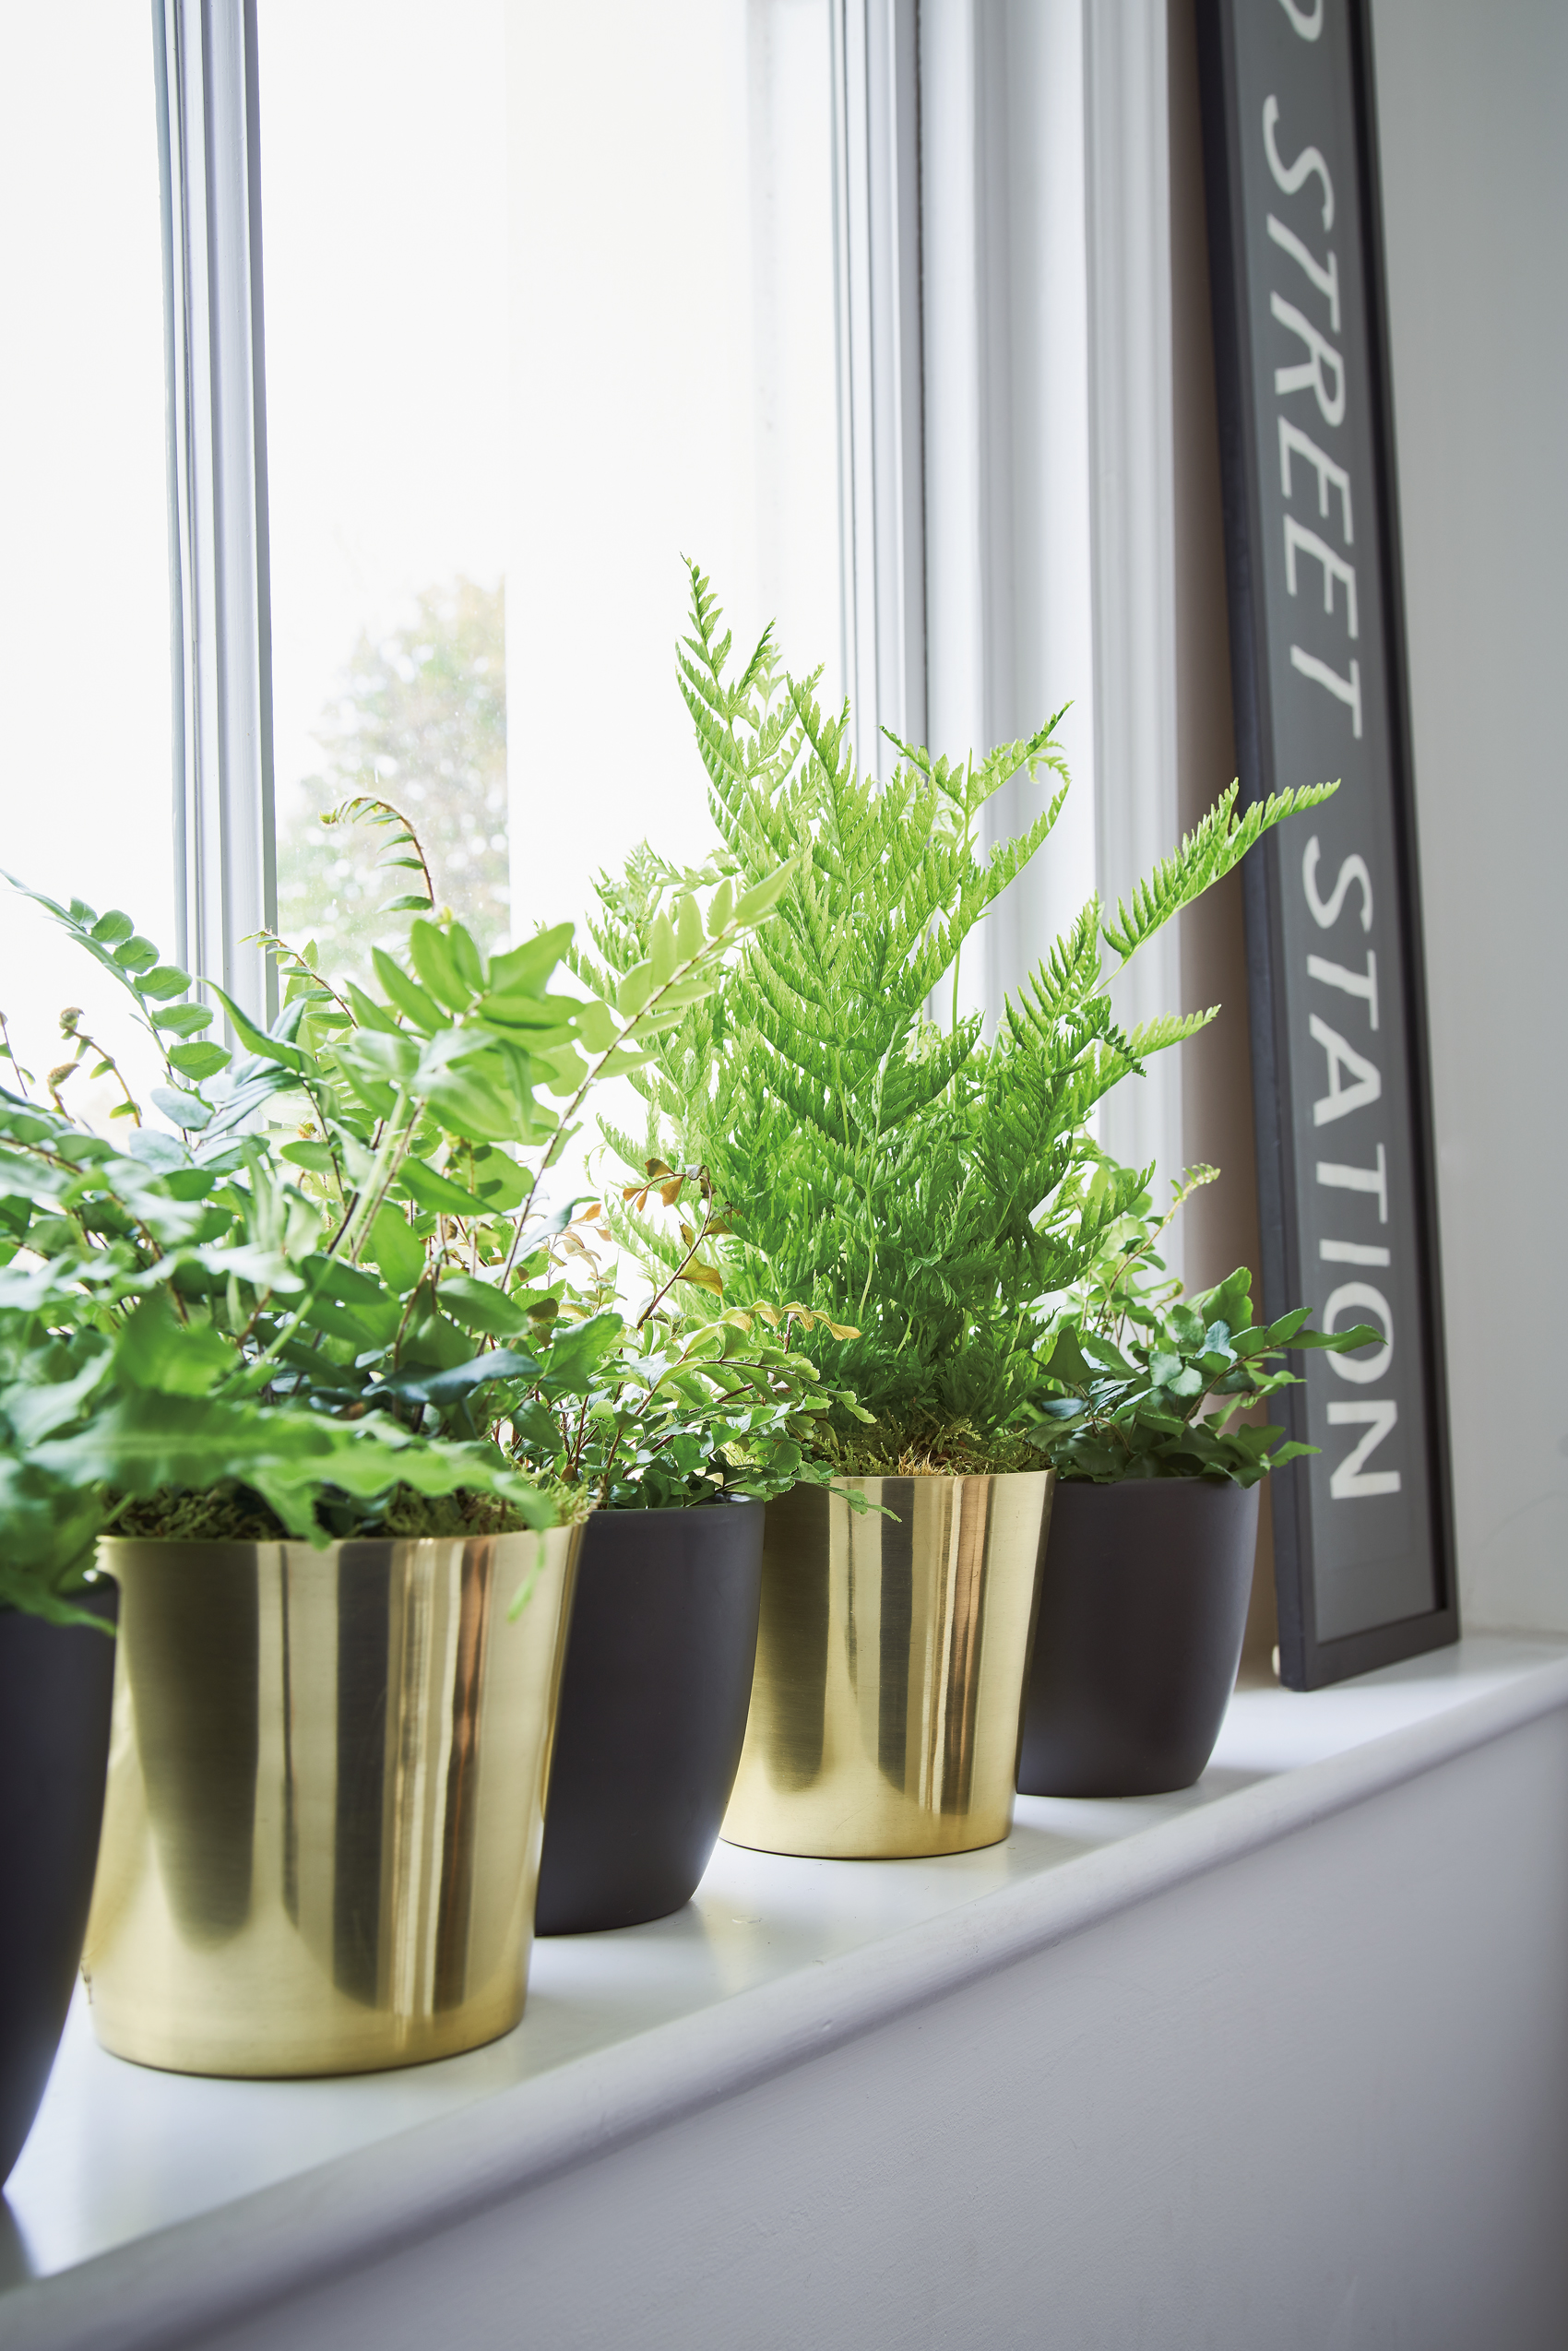 A line up of planters in alternating styles is a simple design device for displaying a collection of plants from the same family, in this case, ferns. Room featured in At Home With Plants y Mitchell (Nick Pope/Mitchell Beazley/PA)